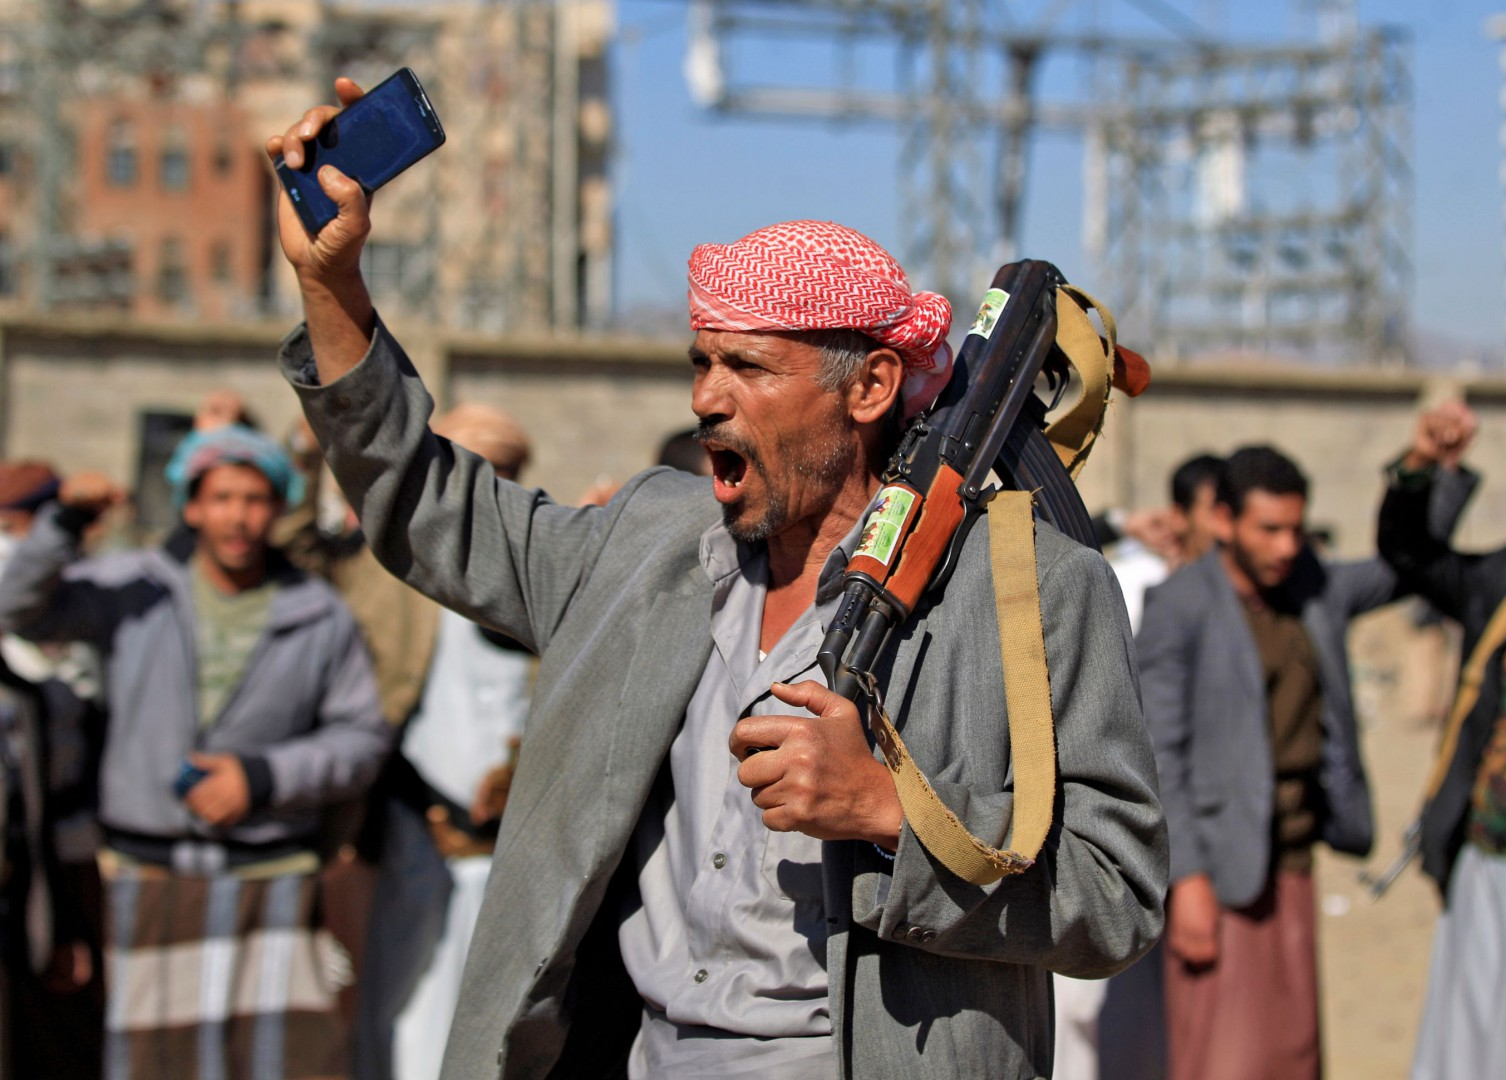 An Yemeni man holds an AK-47 as people gather in the capital Sanaa to show their support to the Shiite Huthi movement against the Saudi-led intervention, on December 19, 2018. - A hard-won truce in the battleground Yemeni city of Hodeida will collapse if rebel violations persist and the United Nations does not intervene, the Saudi-led coalition said on December 19. UN observers are due in Yemen to head up monitoring teams made up of government and rebel representatives tasked with overseeing the implementation of the UN-brokered ceasefire that took effect on Tuesday. (Photo by Mohammed HUWAIS / AFP)